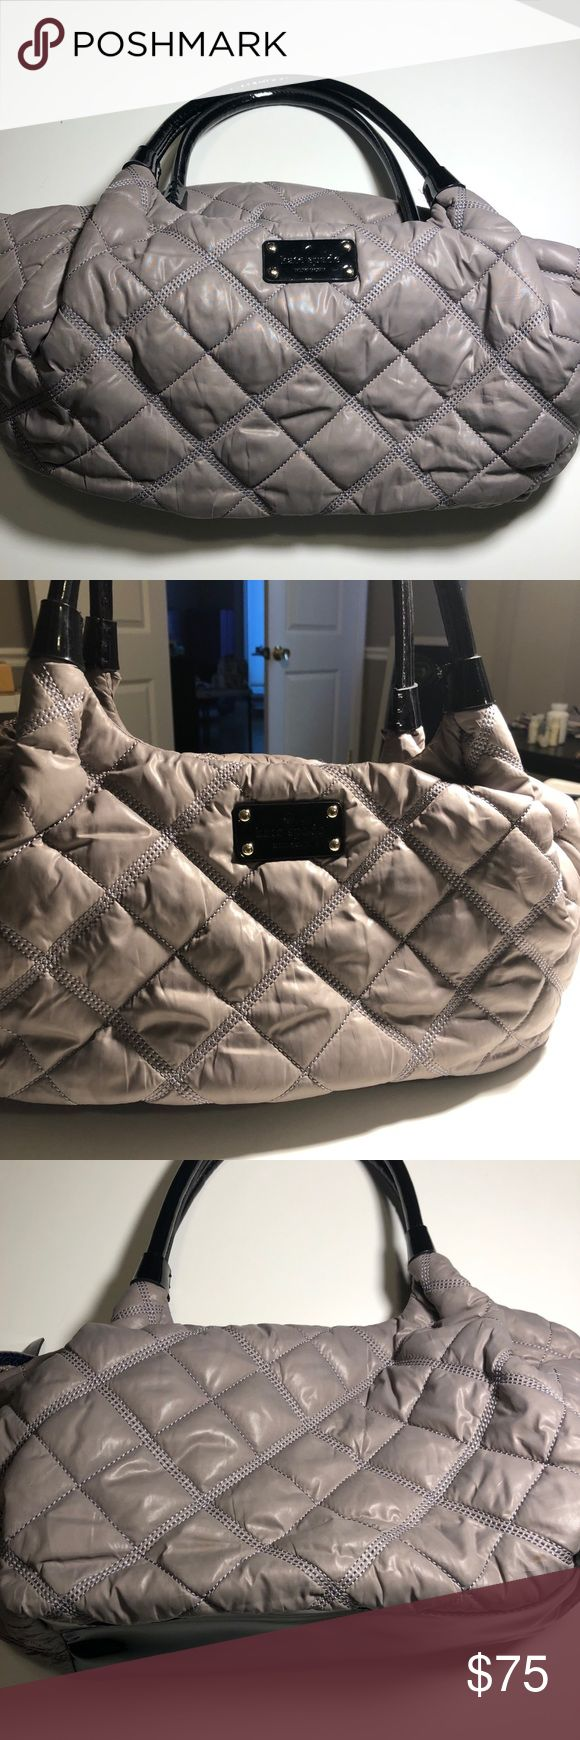 Kate Spade quilted nylon shoulder bag Excellent used condition - nylon quilted shoulder bag by Kate Spade.  Zip top closure and inside pockets to keep your items organized. kate spade Bags Shoulder Bags